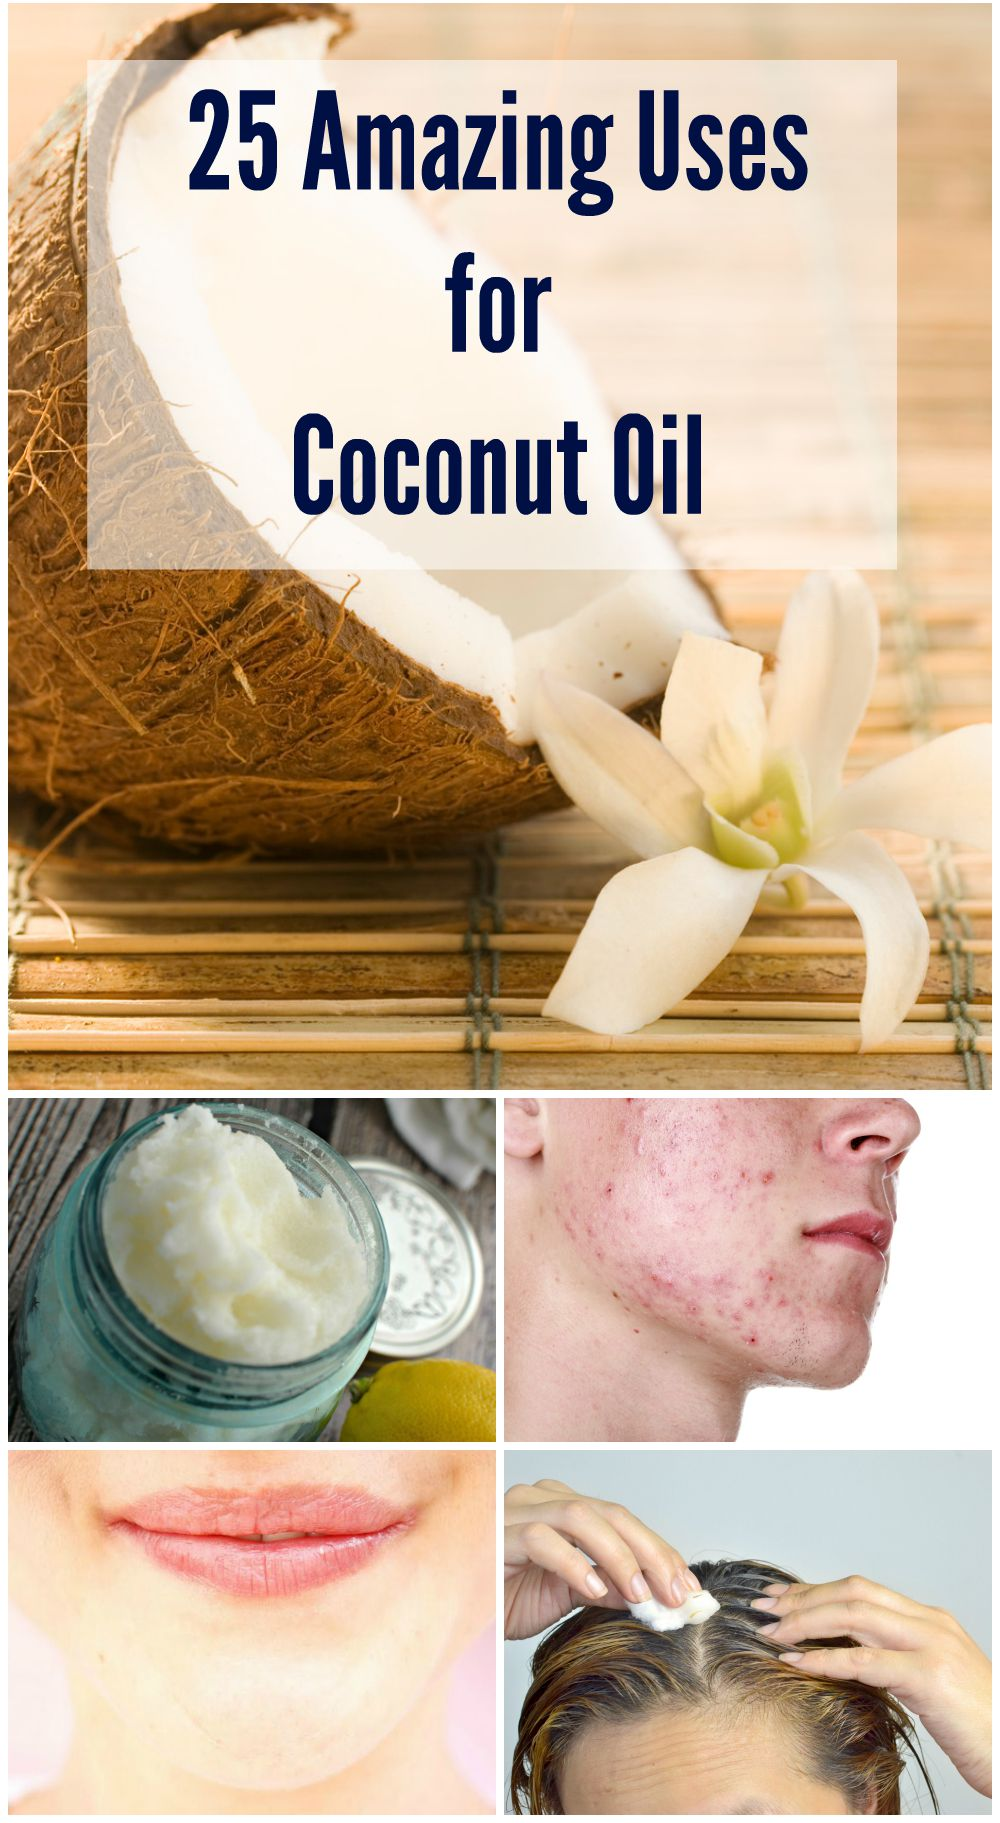 Coconut oil is anti-bacterial, anti-fungal, anti-inflammatory, and may even be able to fight the spread of cancer. There are many uses for coconut oil.